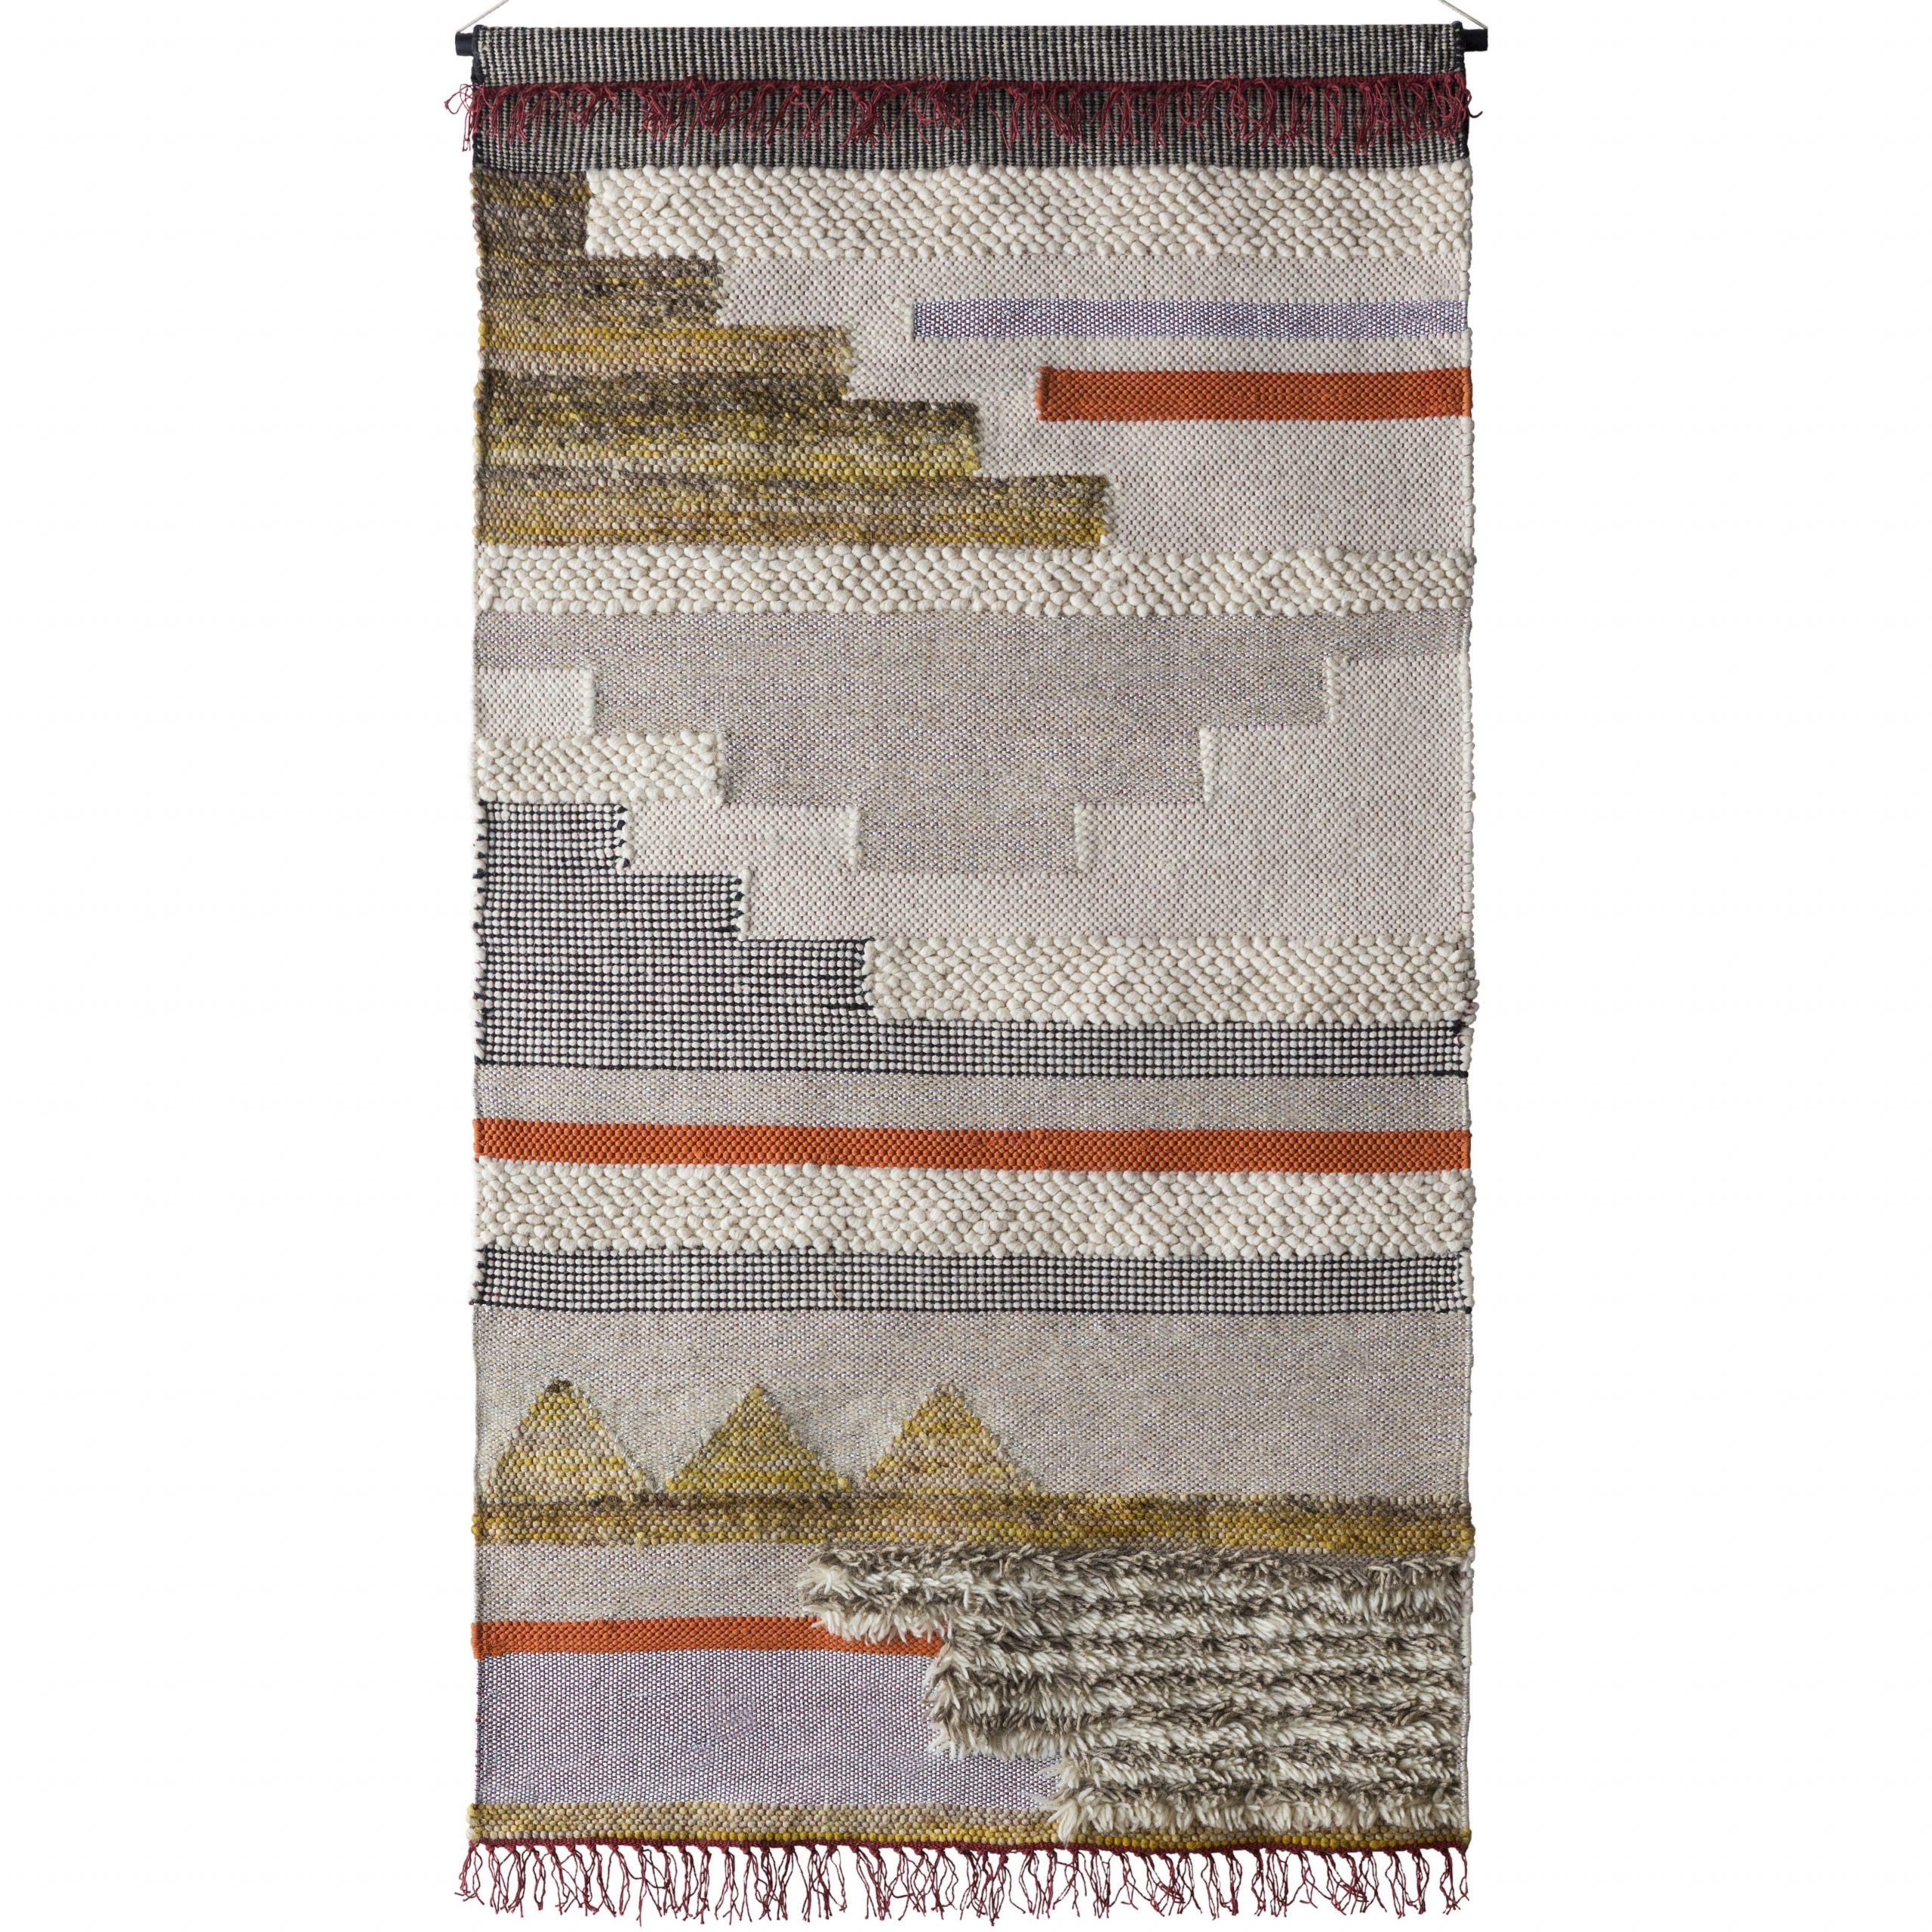 Blended Fabric Wall Hanging With Hanging Accessories Inside 2018 Blended Fabric Wall Hangings With Hanging Accessories Included (View 4 of 20)